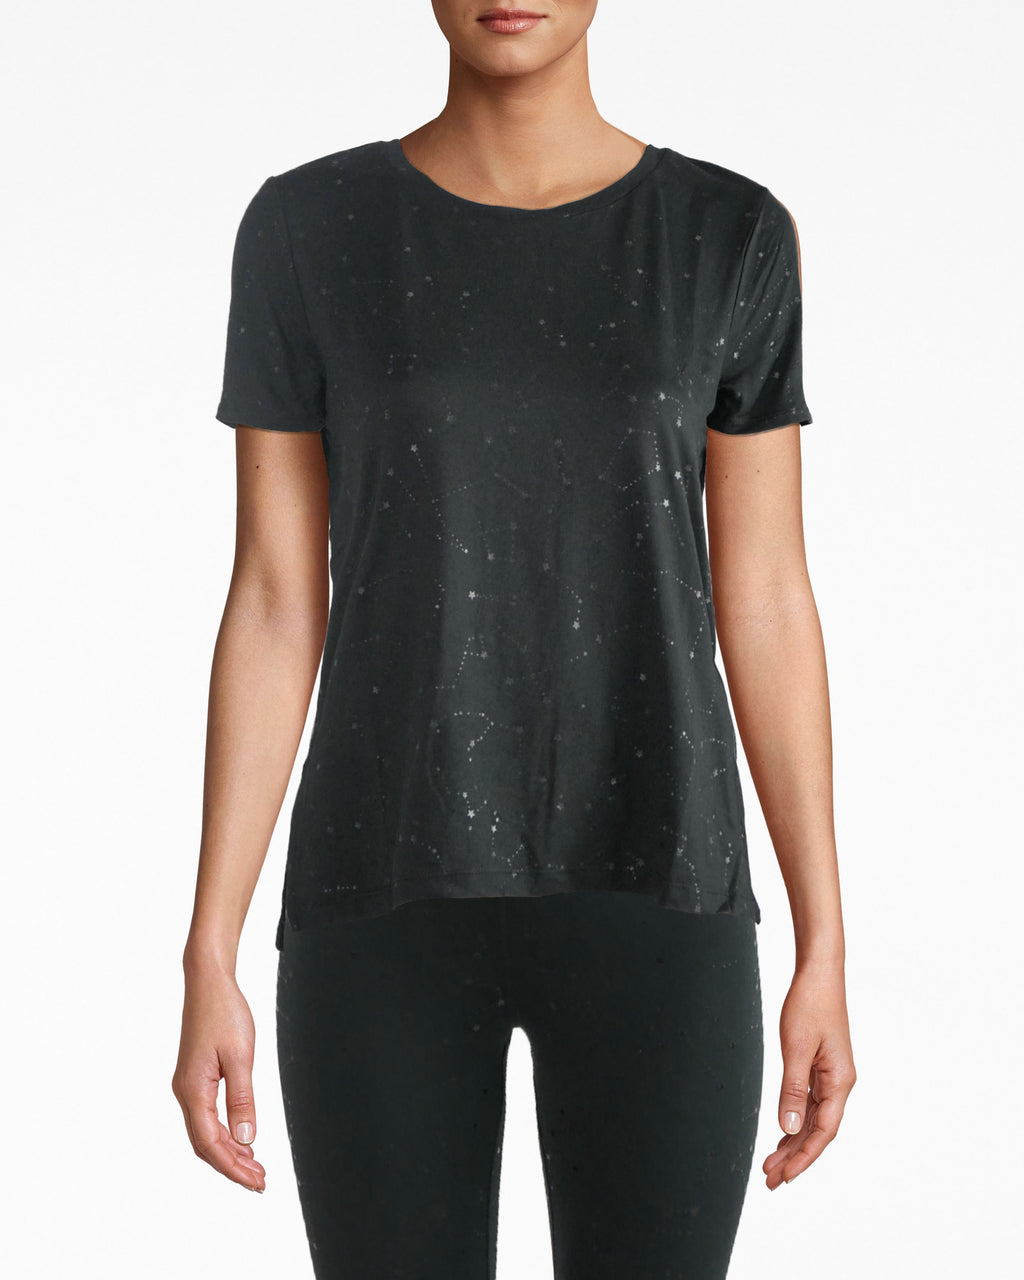 N8ZT007 - High Low Tee - activewear - activewear tops - Hello, high low. This star-studded sport tee is comfort intertwined with cool. It has a wide round neck and simple shirt sleeves. The fabric has a barely-there, breathable feel. Pair back with NM leggings.